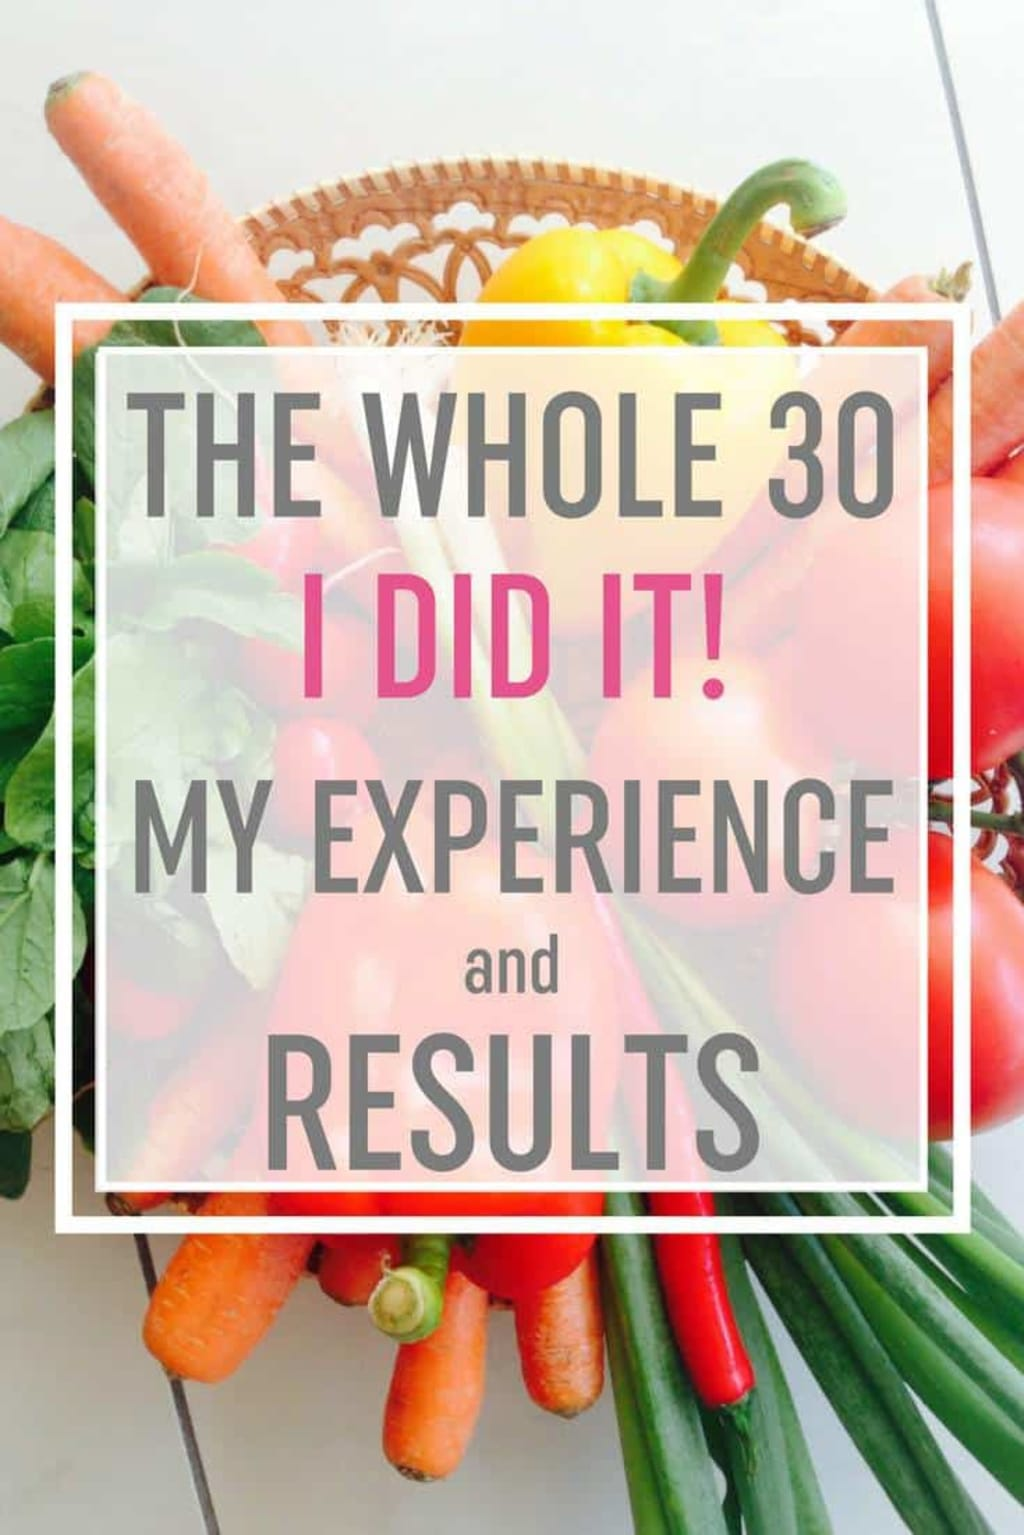 Whole30 is a game changer